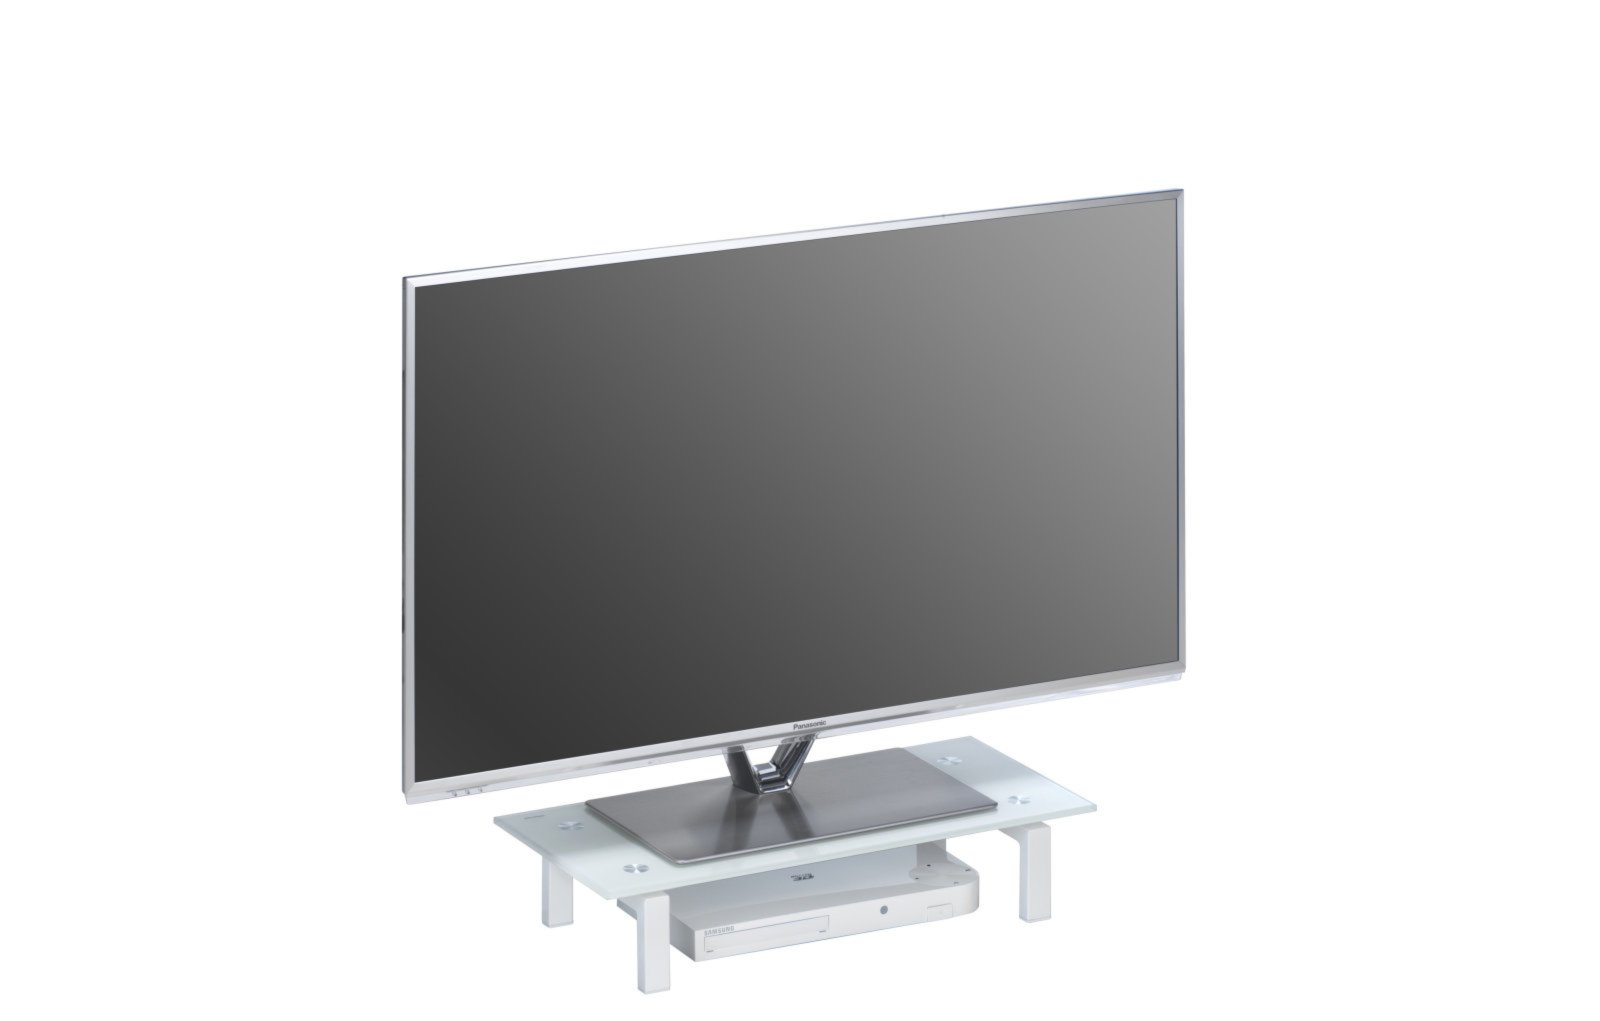 tv board wei metall mit glasplatte 60 cm breit. Black Bedroom Furniture Sets. Home Design Ideas